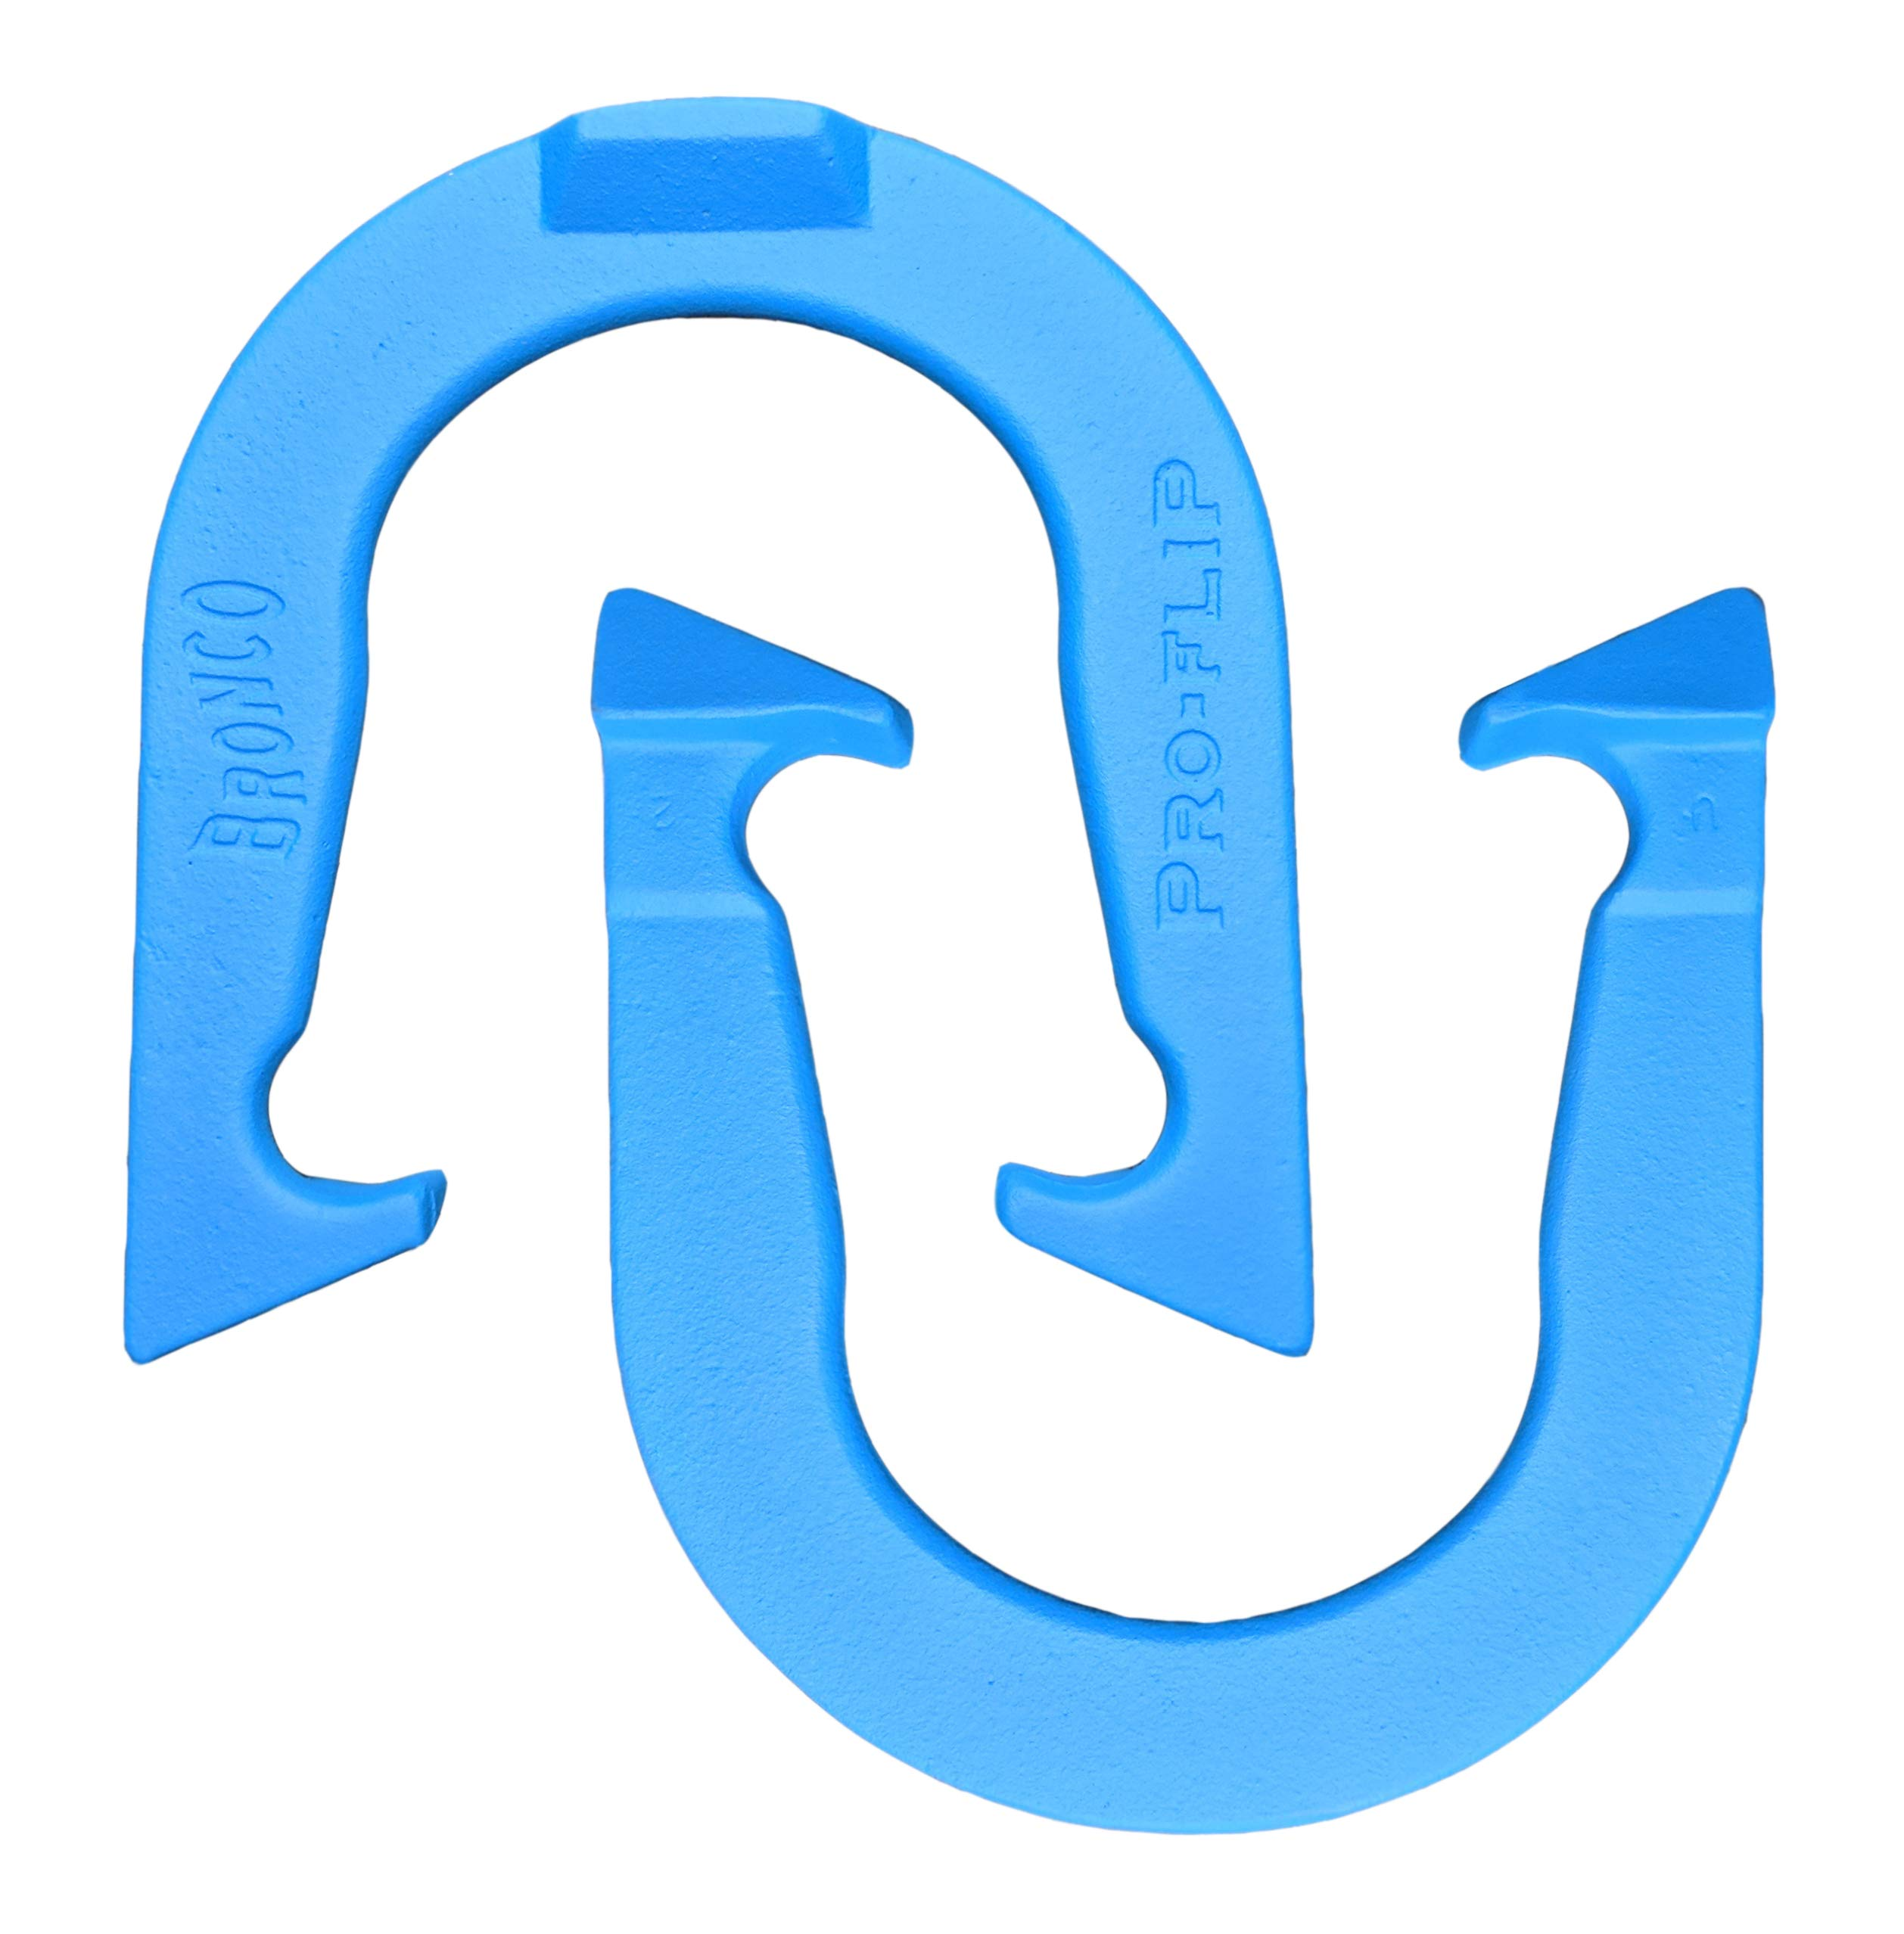 Bronco Pro-Flip Professional Pitching Horseshoes- Made in USA (Blue- Single Pair (2 Shoes)) by Thoroughbred Horseshoes